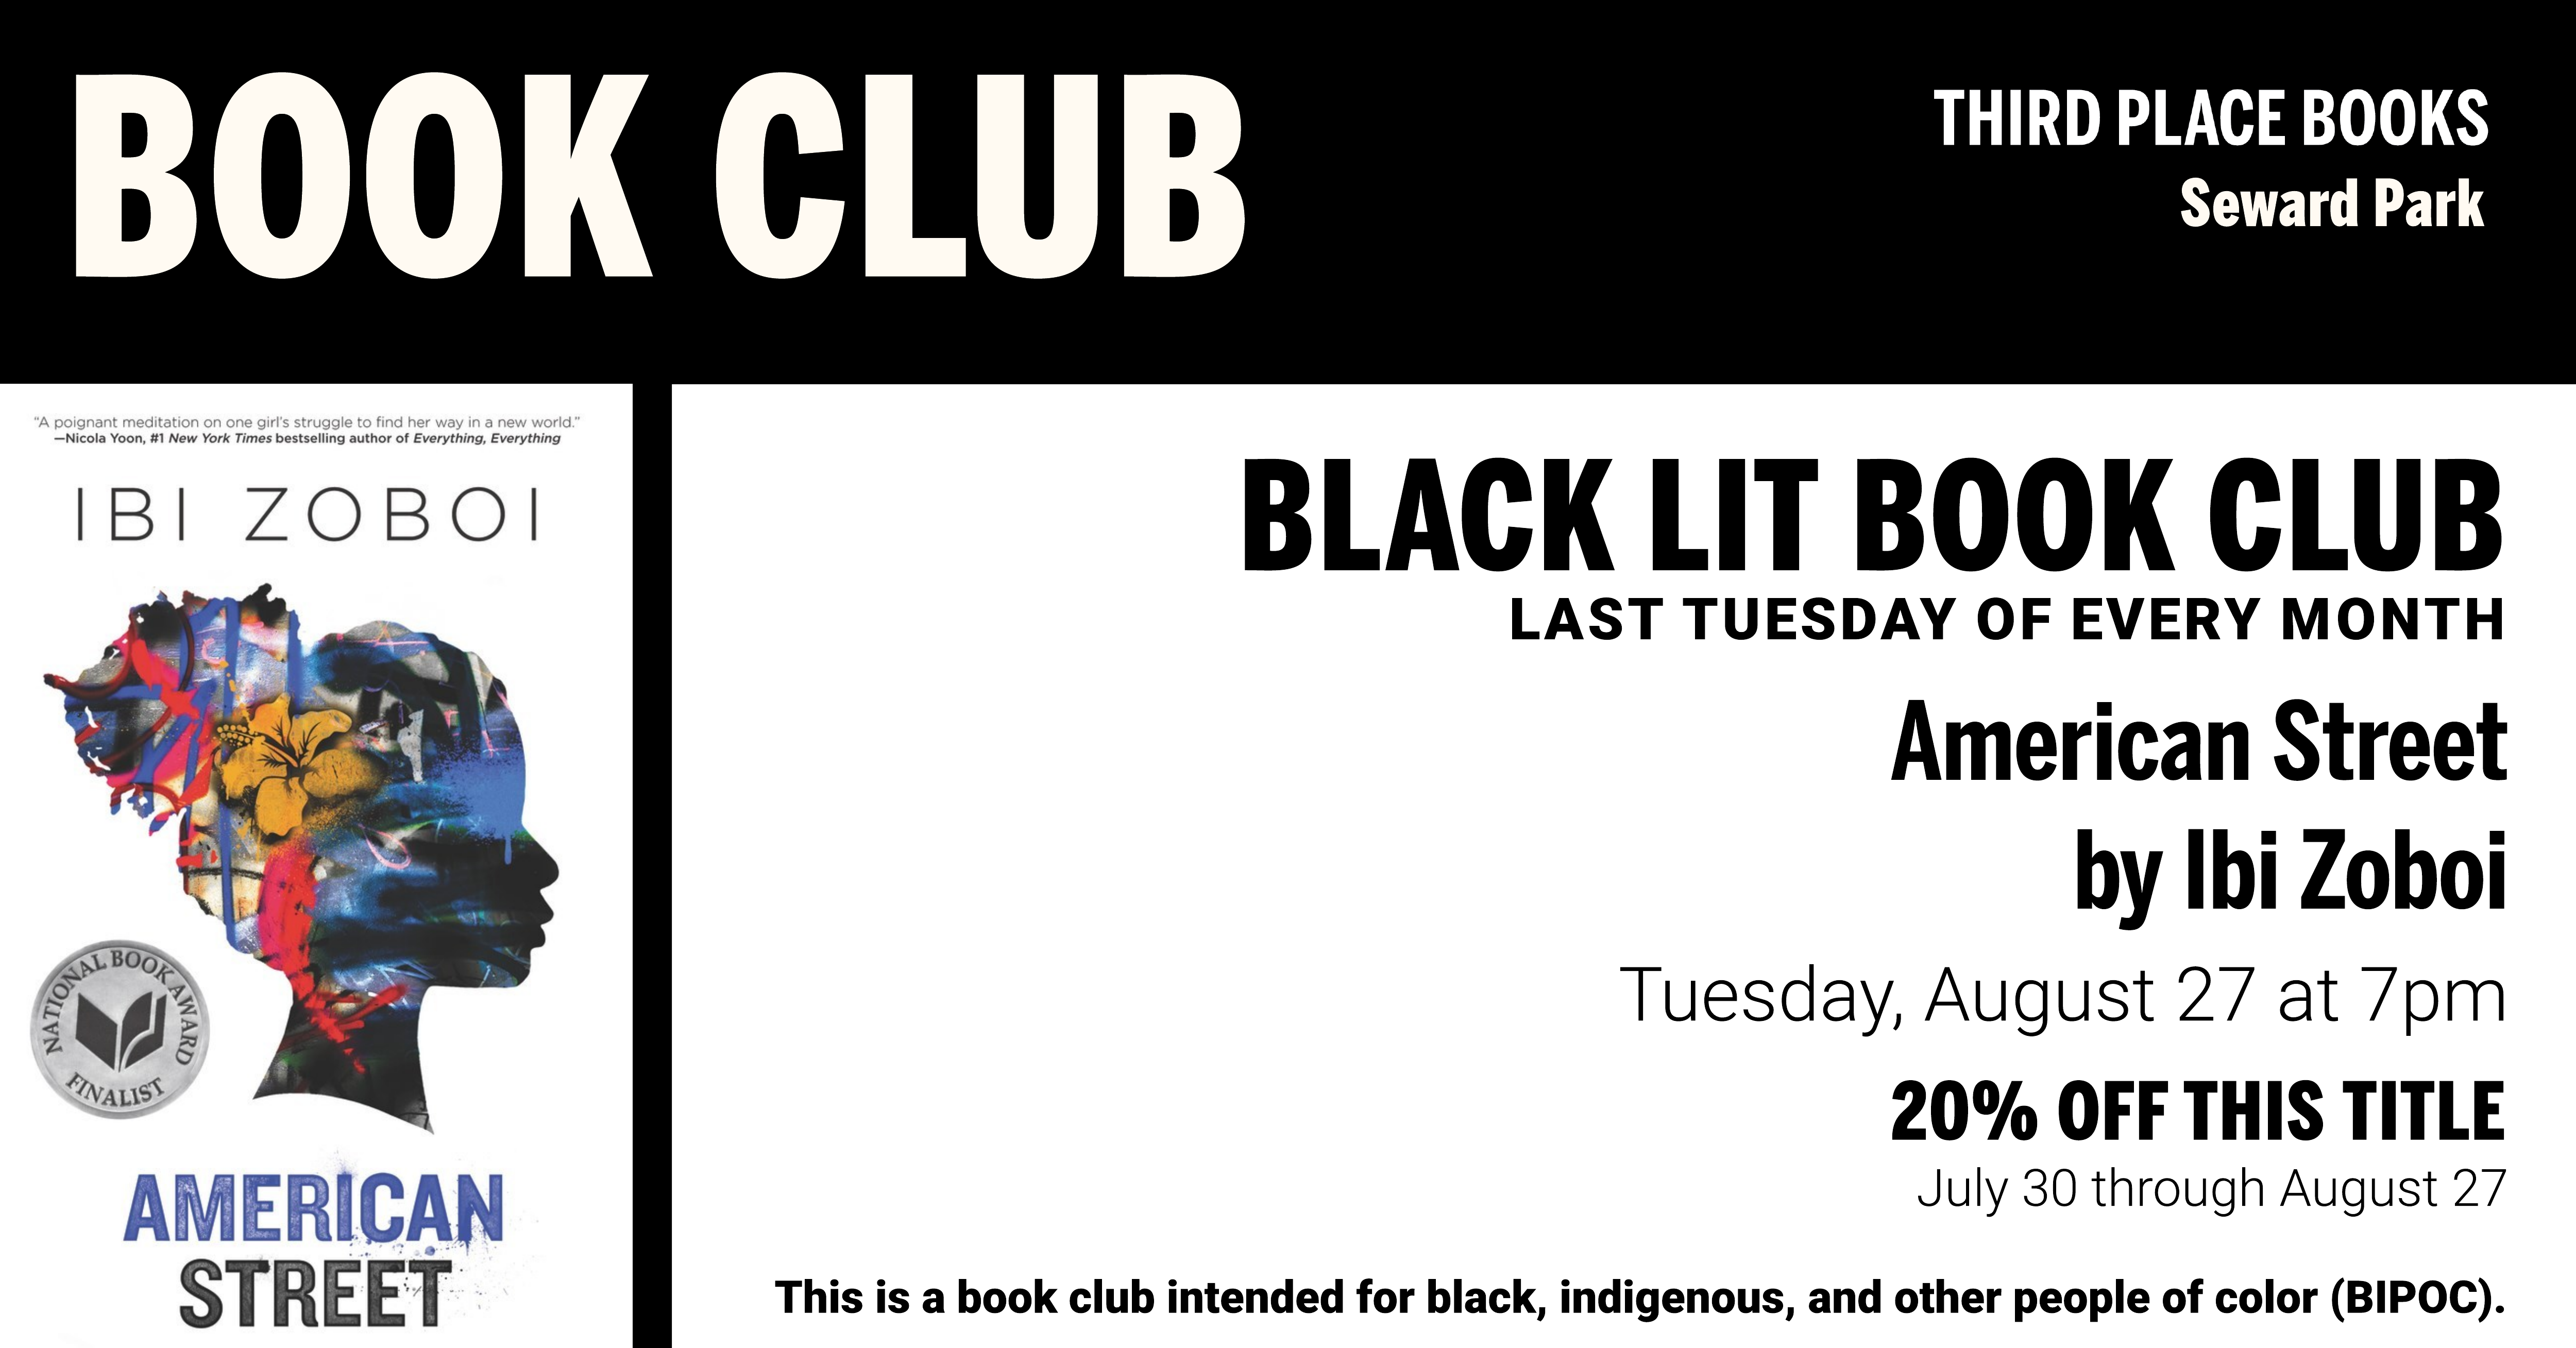 Black Lit Book Club discussing American Street on Tuesday, August 27 at 7pm